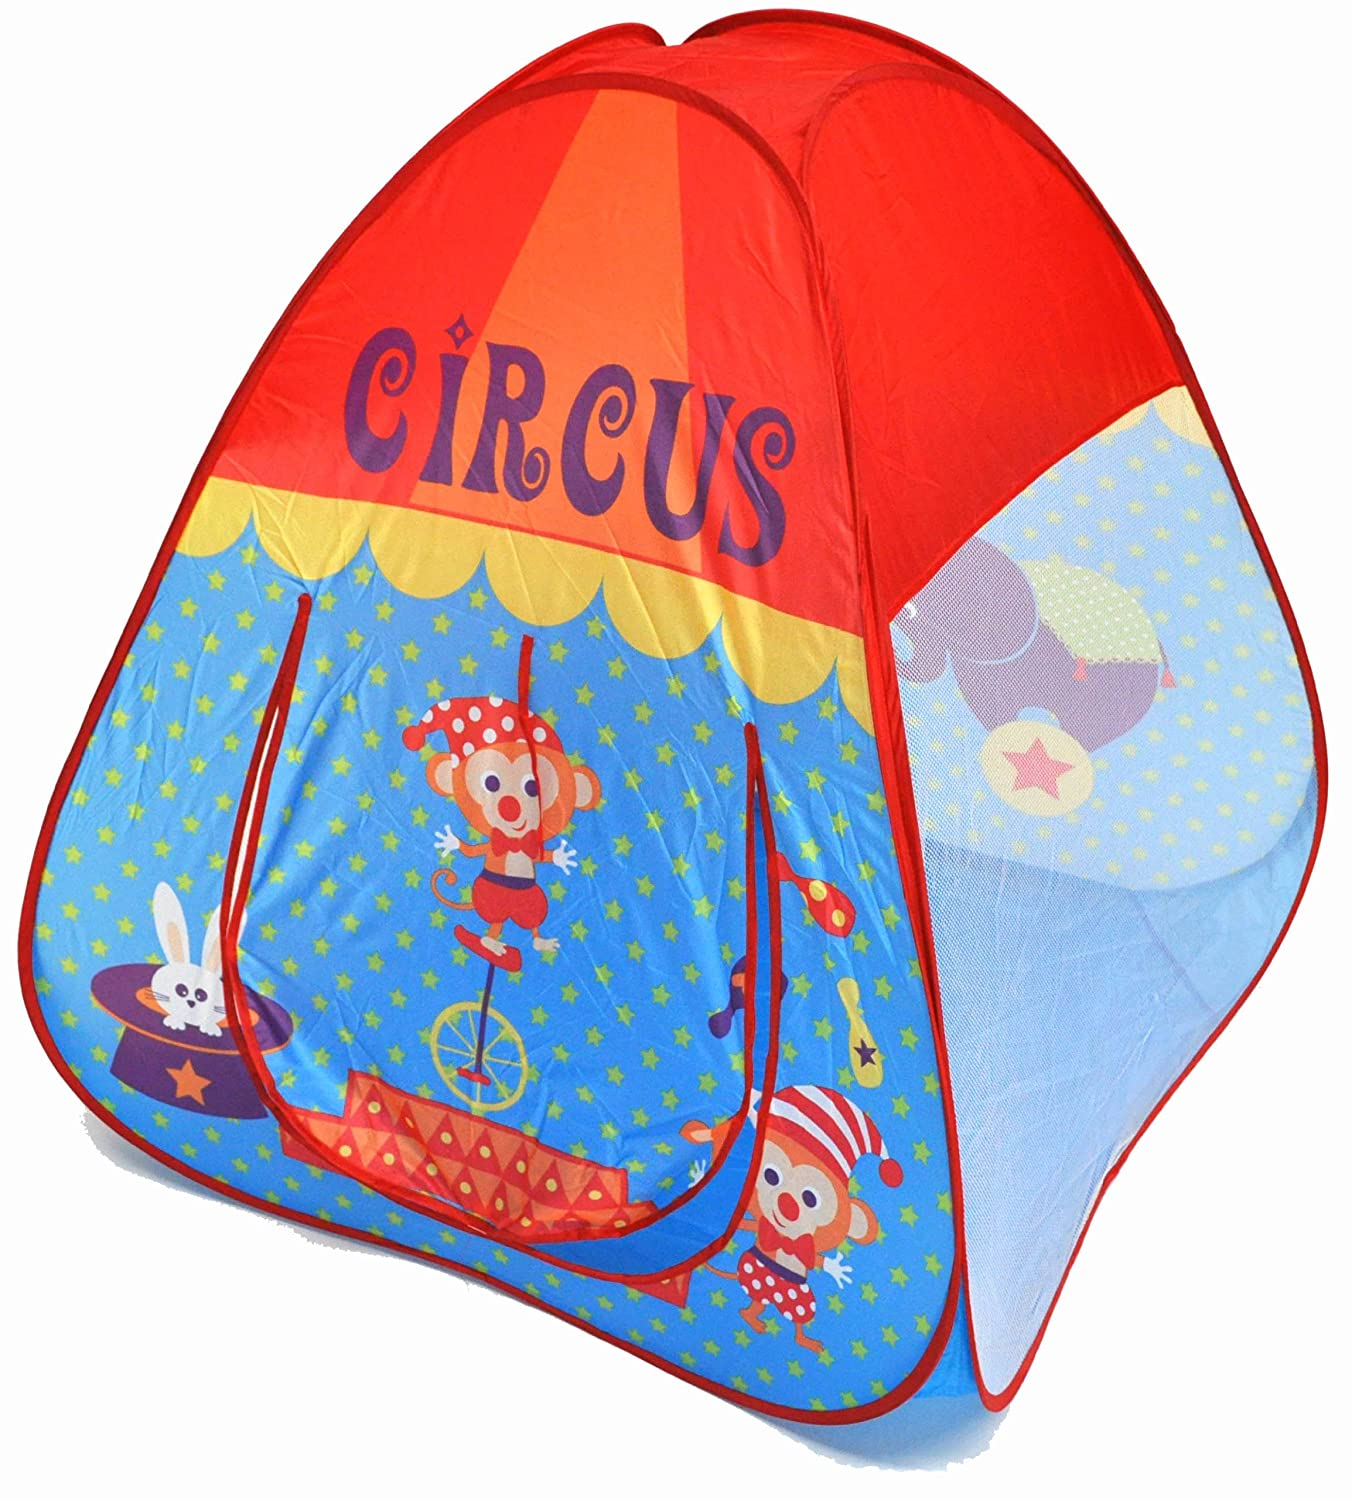 amazon com circus theme twist play tent house for kids w safety